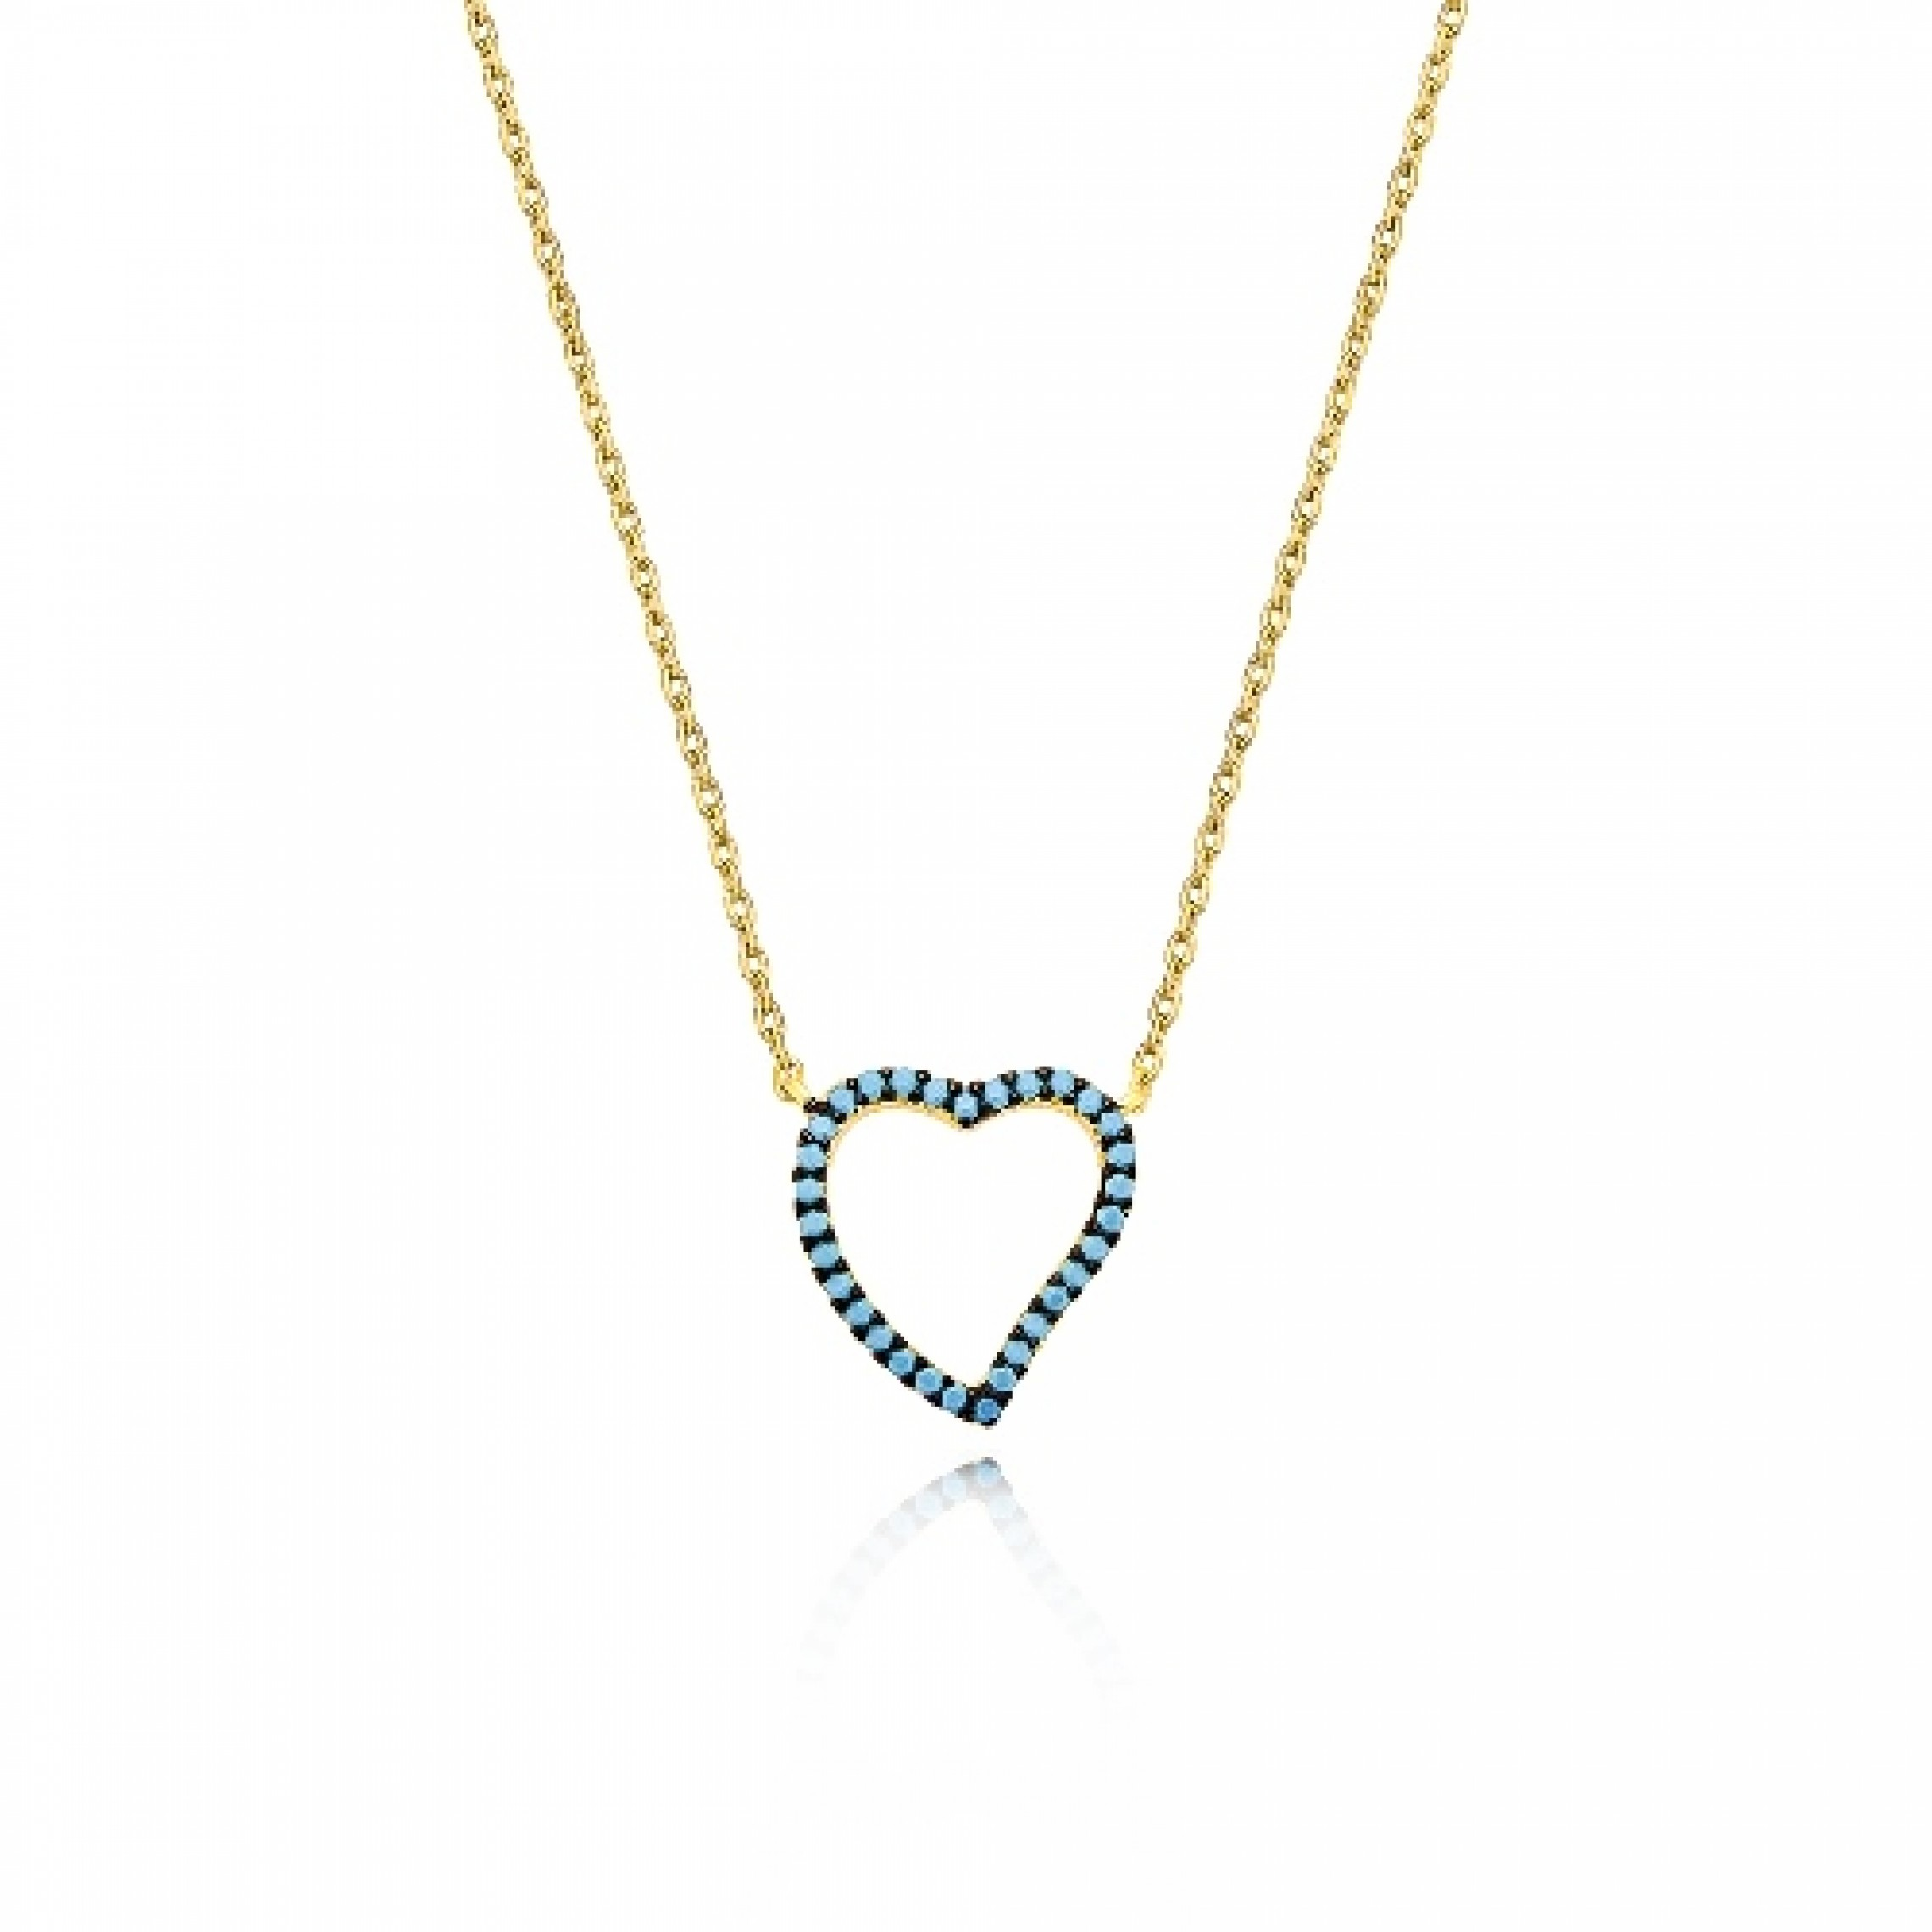 JN-190172 Evil Eye 925 Sterling Silver CZ Necklace Heart